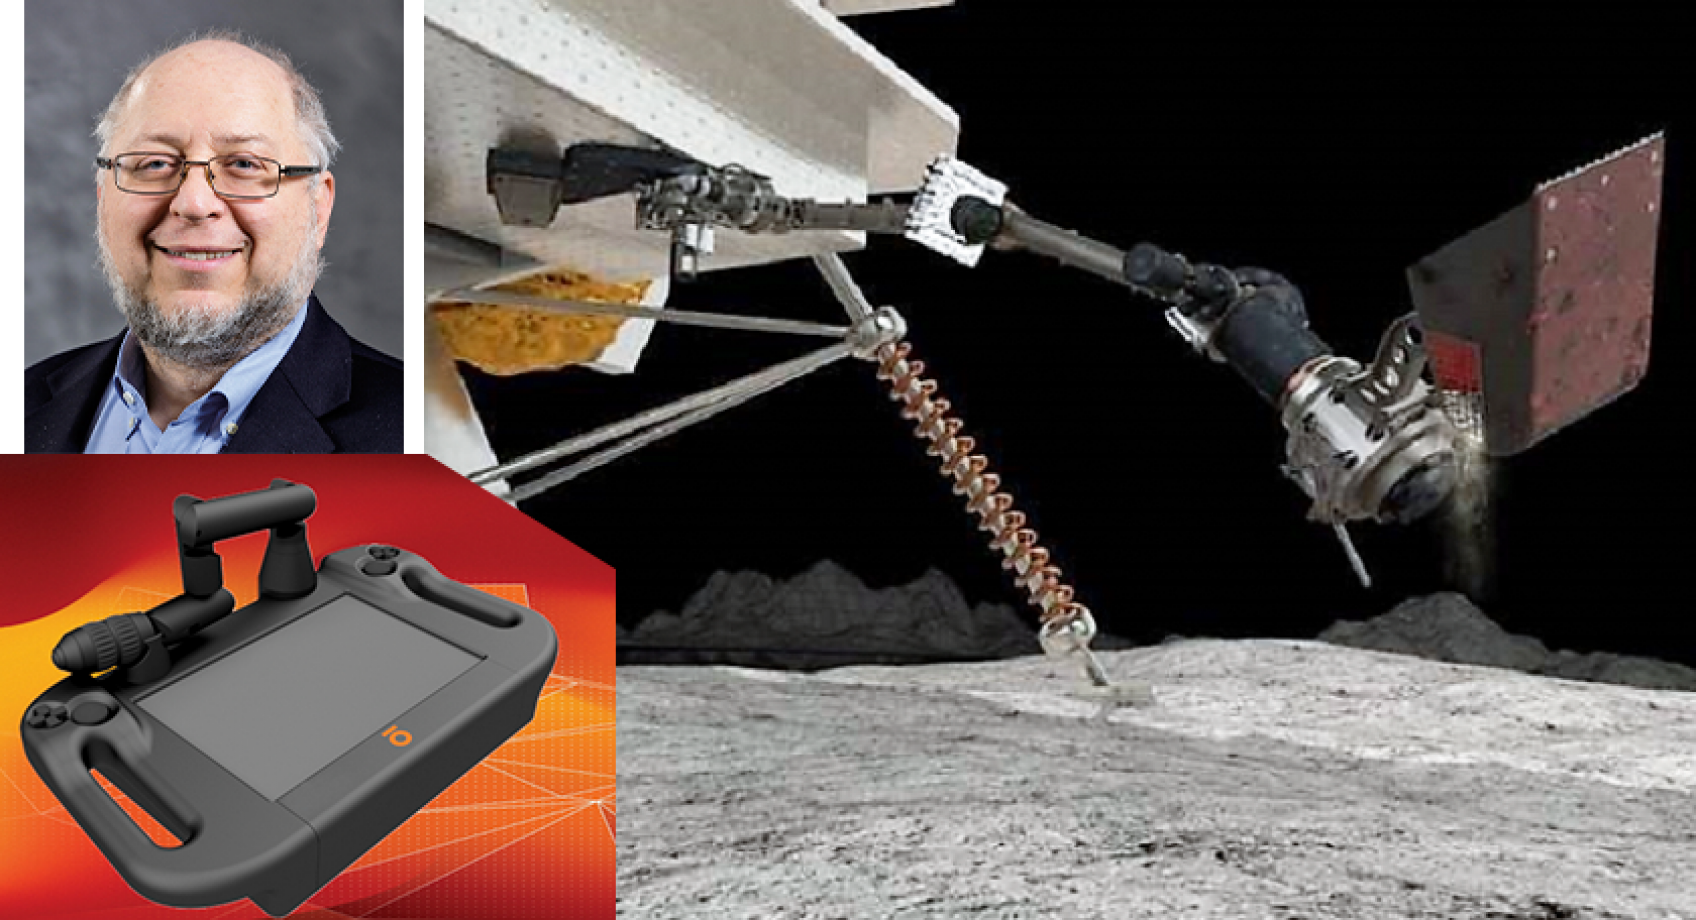 Professor Howard Chizeck's company Olis Robotics chosen to run software for lunar missions Banner